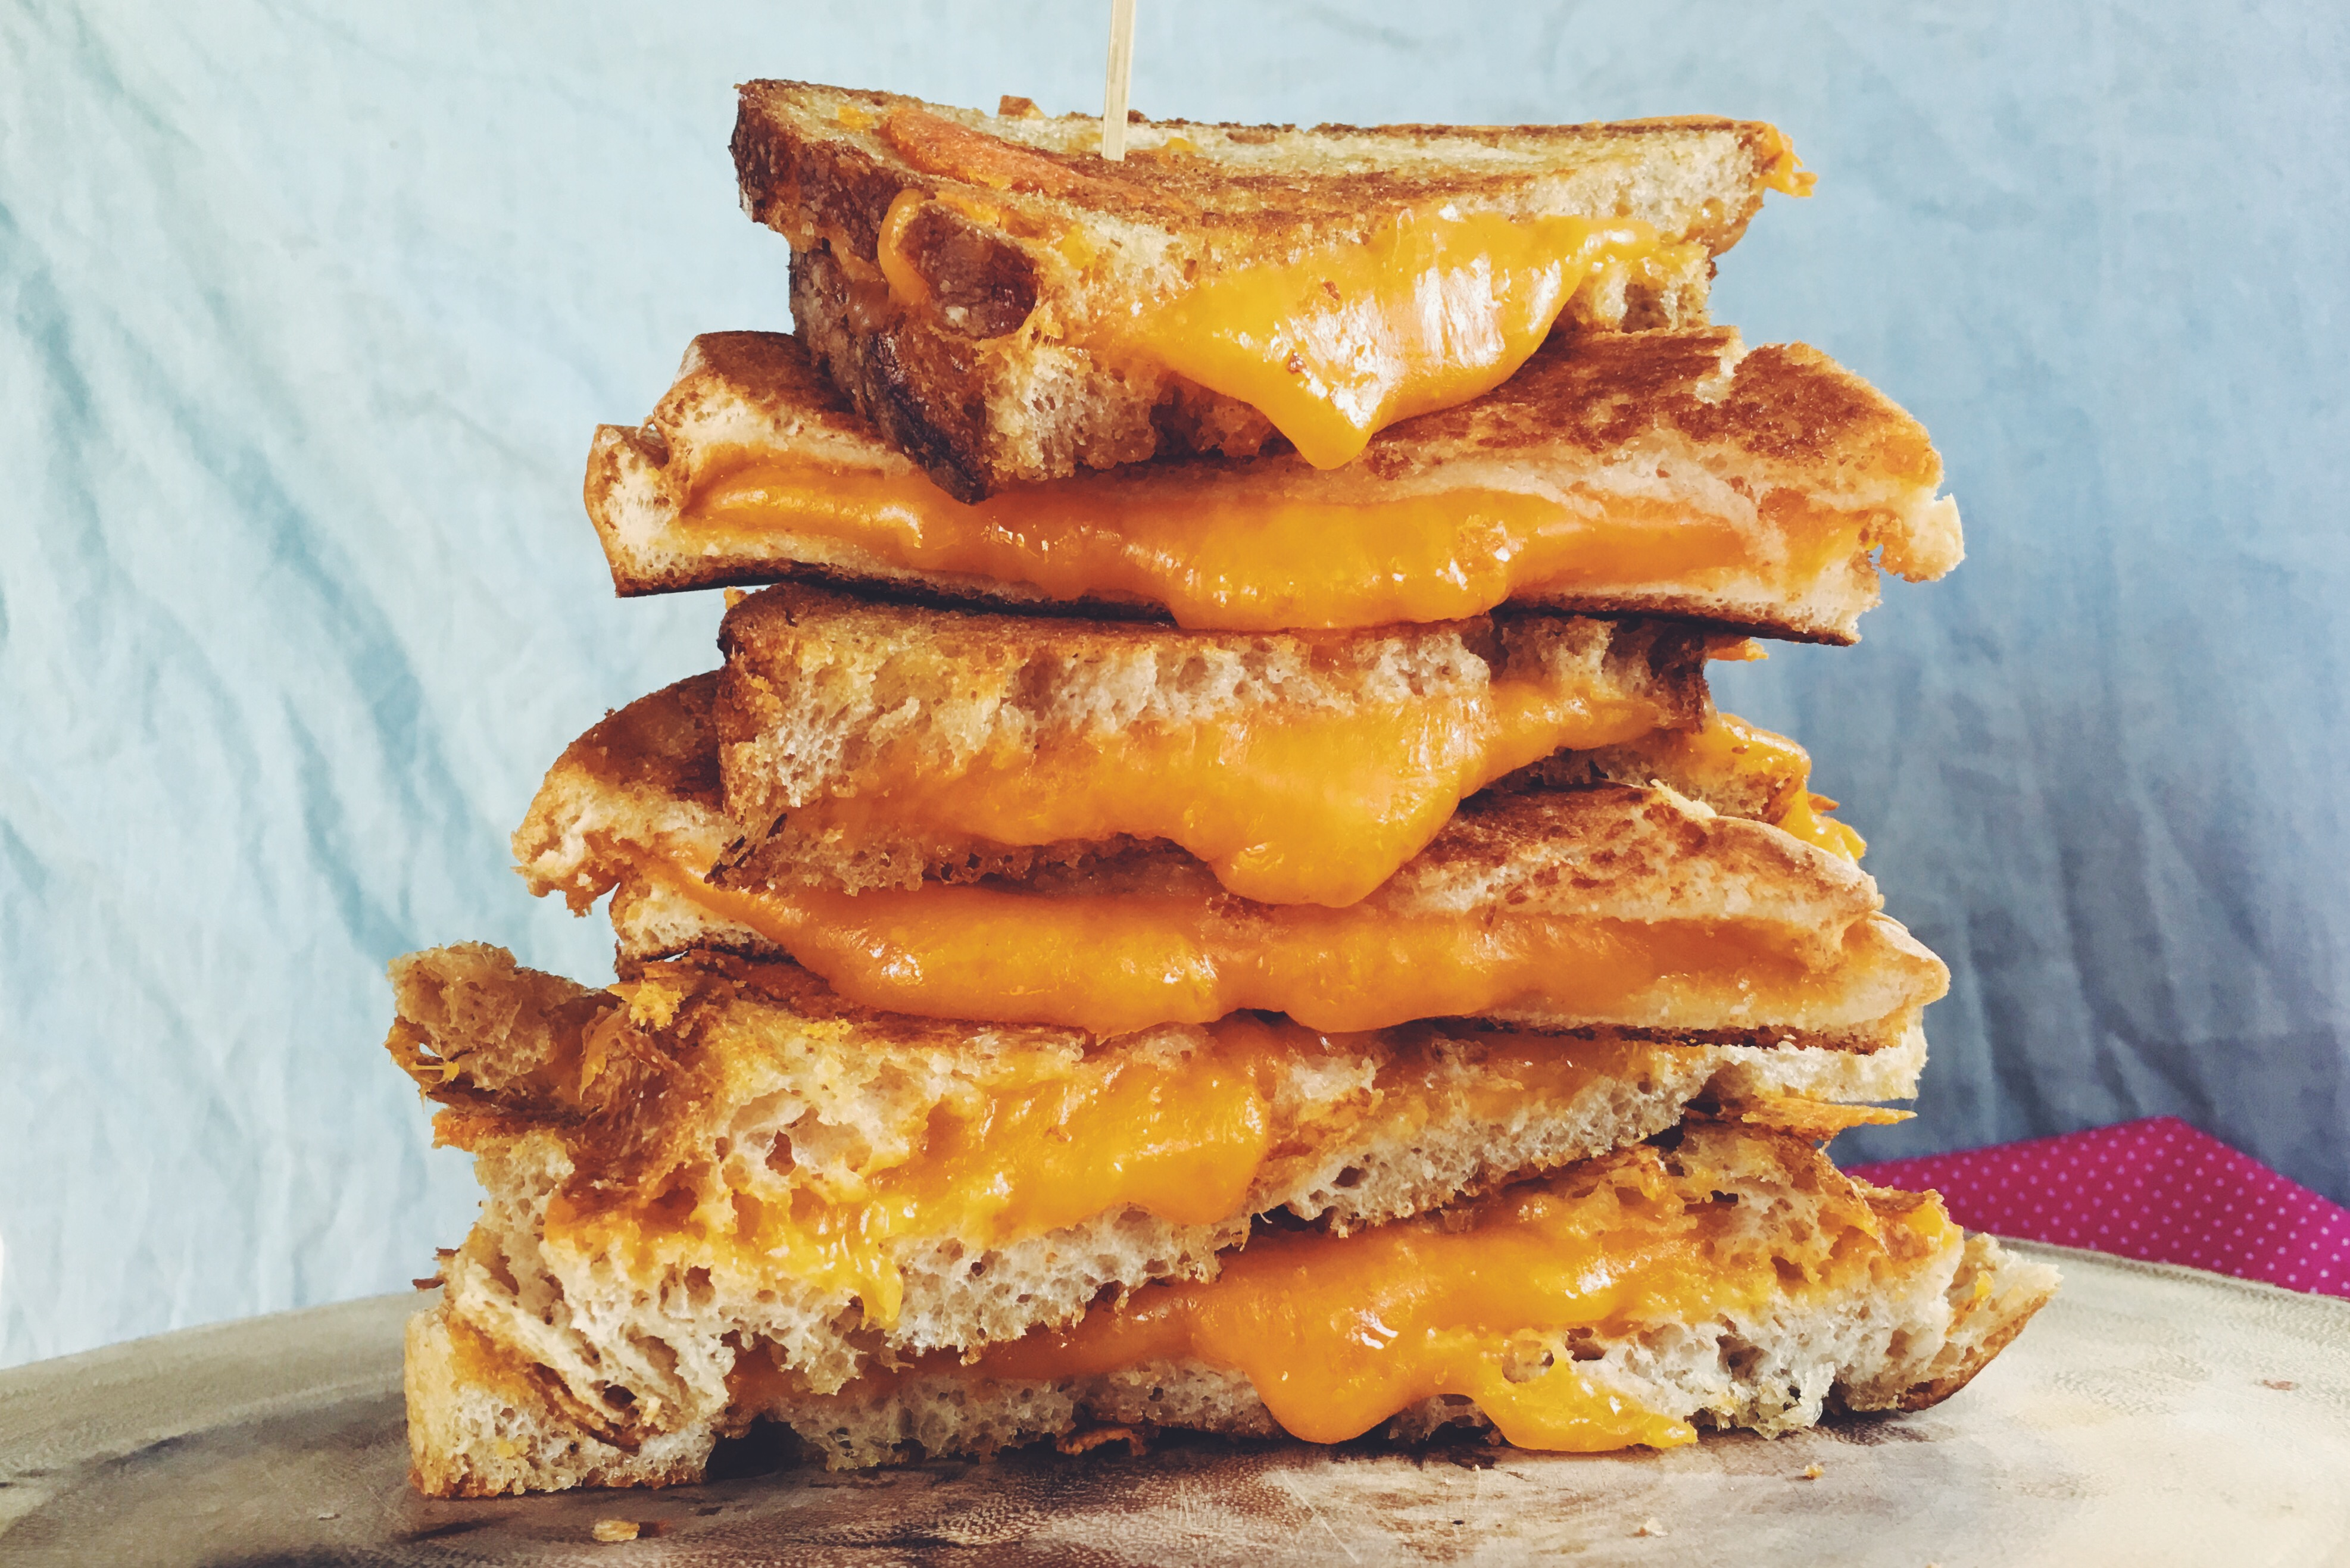 Images of Grilled Cheese | 3947x2634